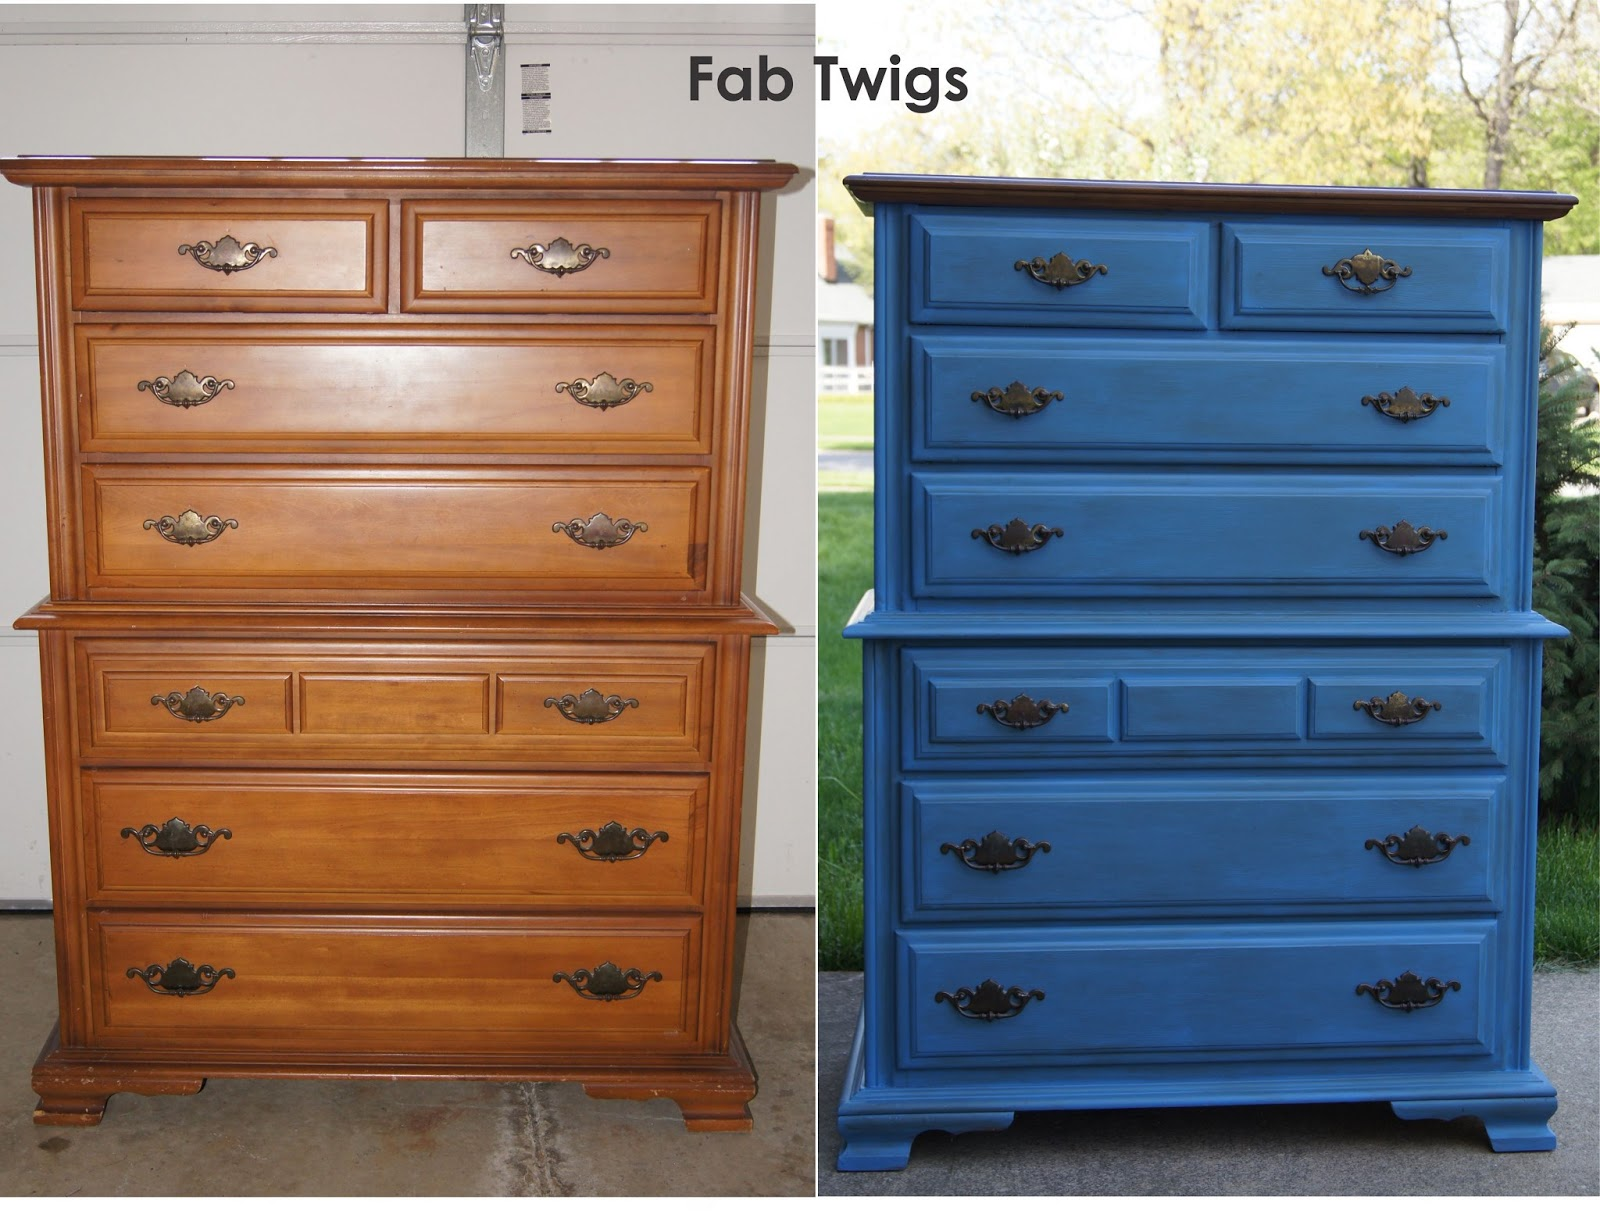 Fabtwigs Dresser Transformation Painting Furniture With Annie Sloan Chalk Paint